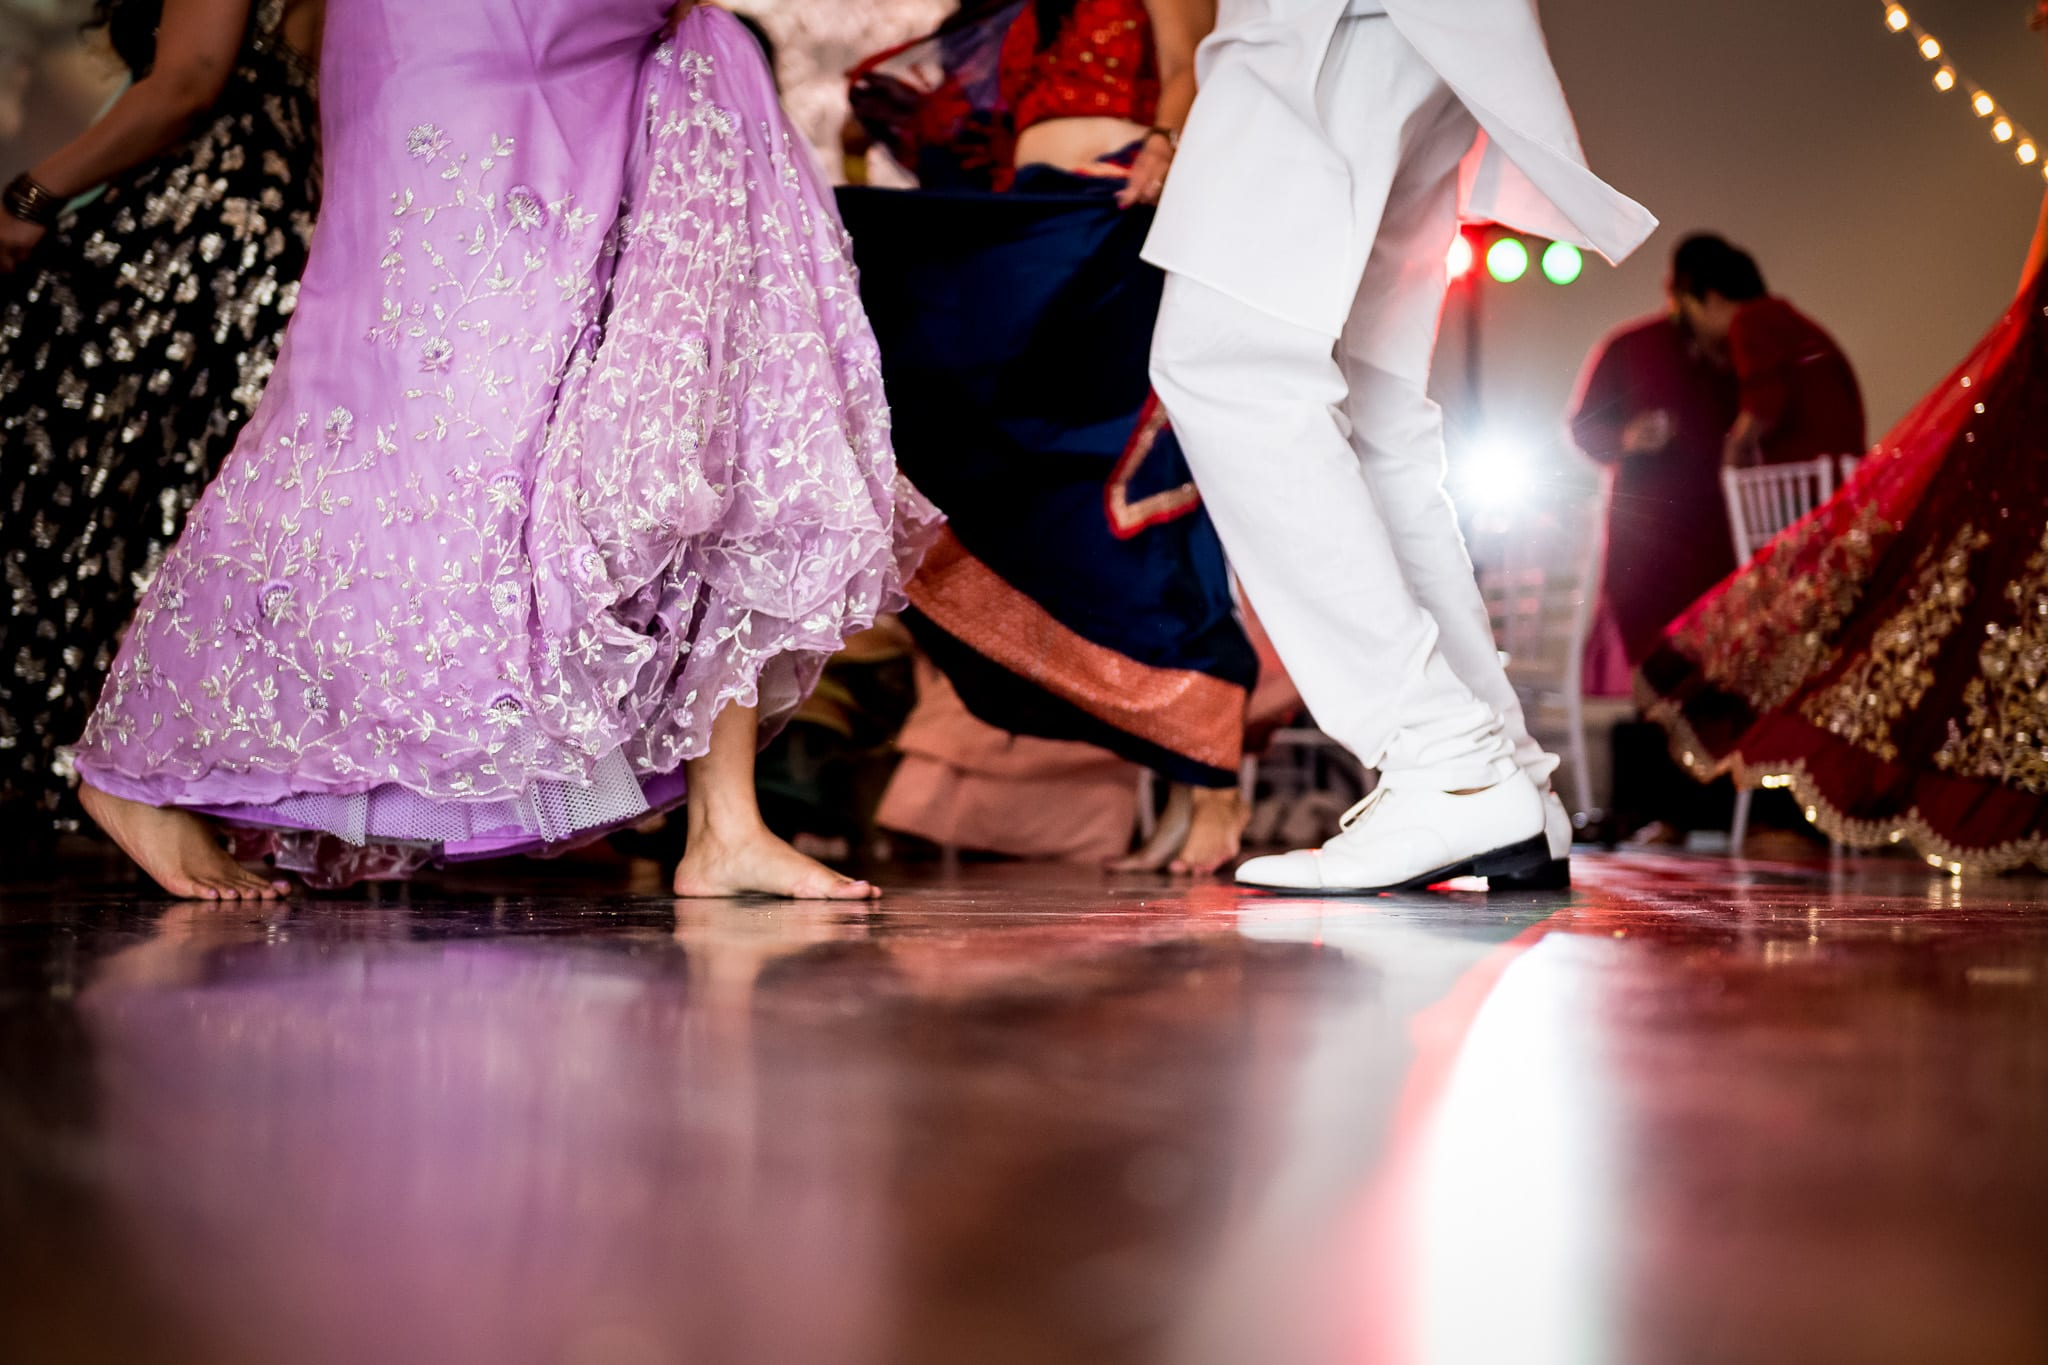 Bride and grooms feet reflecting off the shiny dance floor